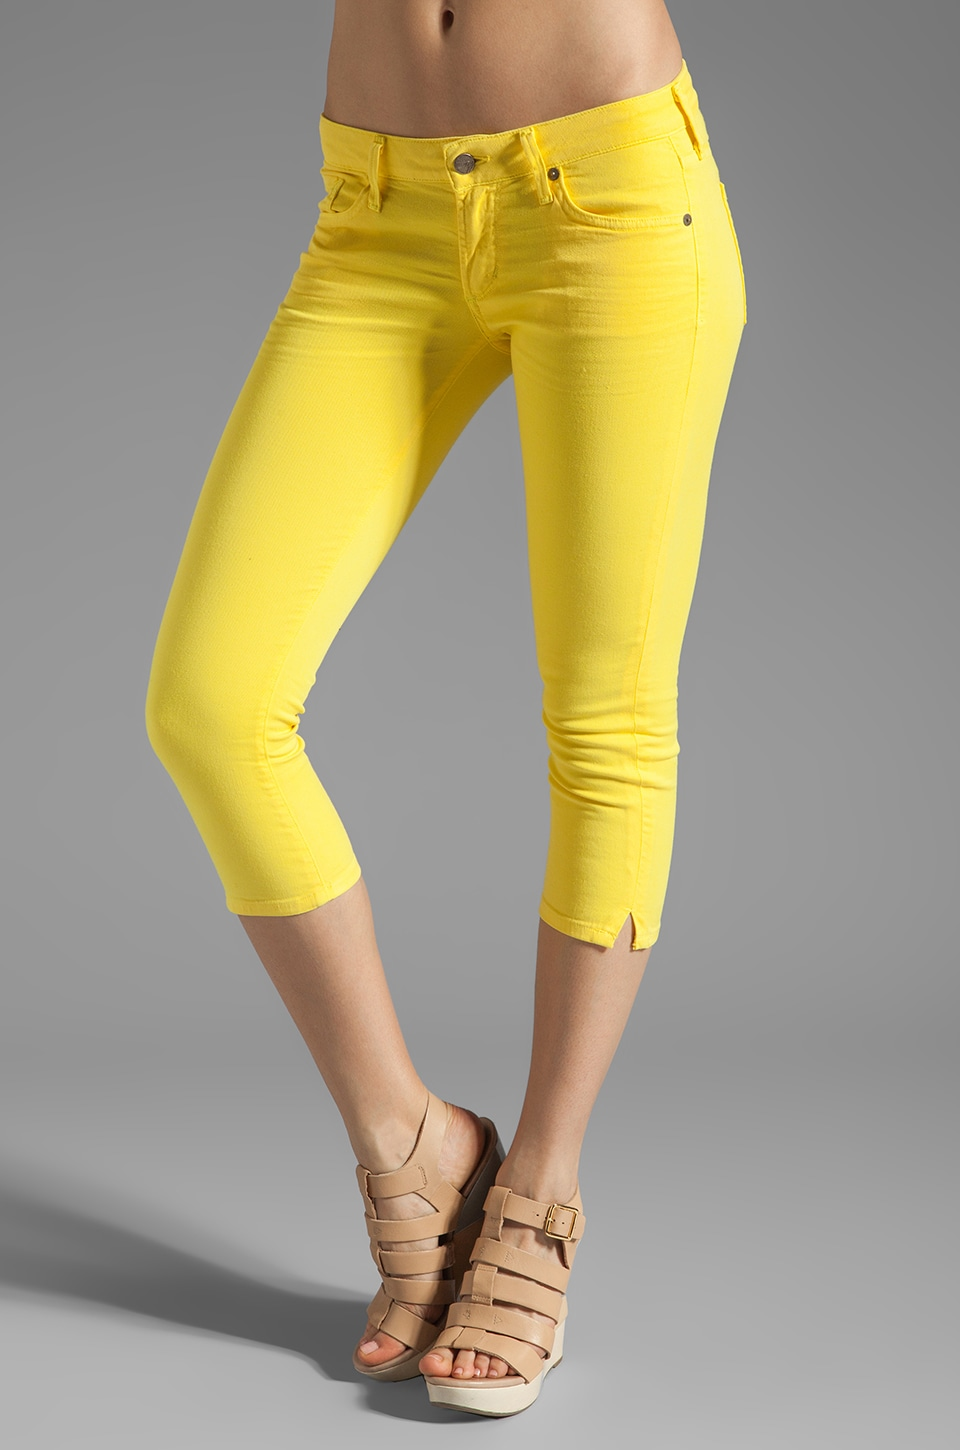 Citizens of Humanity Racer Crop in Citron